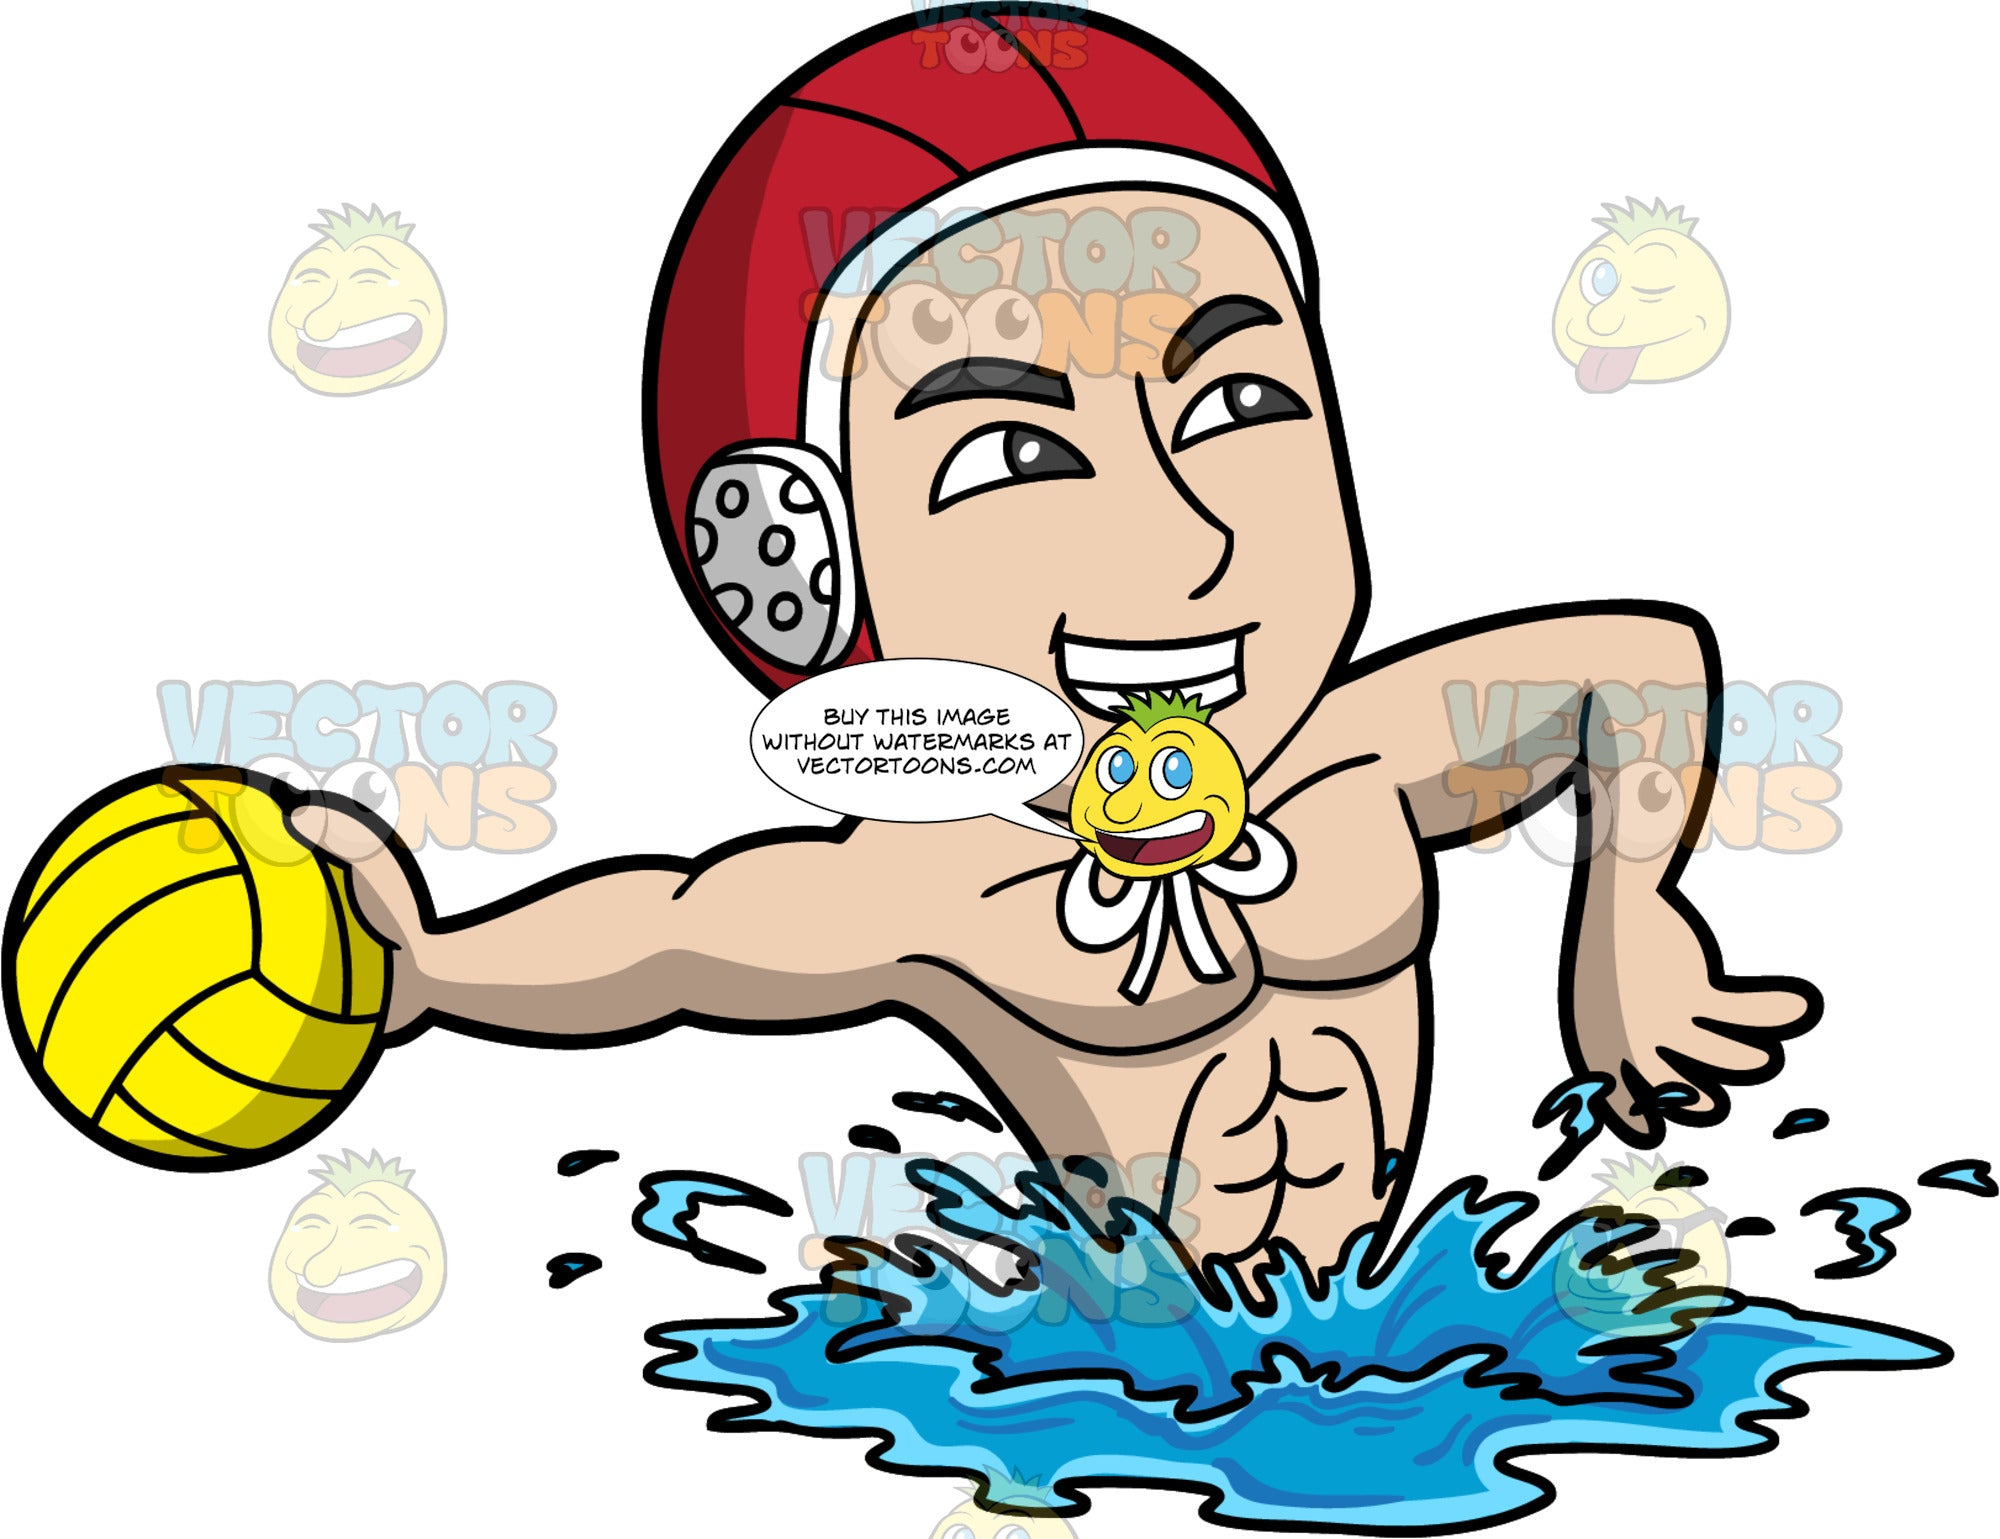 A Man Getting Ready To Throw A Water Polo Ball. A man wearing a red water polo cap, smiles as he reaches his arm behind him and gets ready to throw the yellow water polo ball in his hand